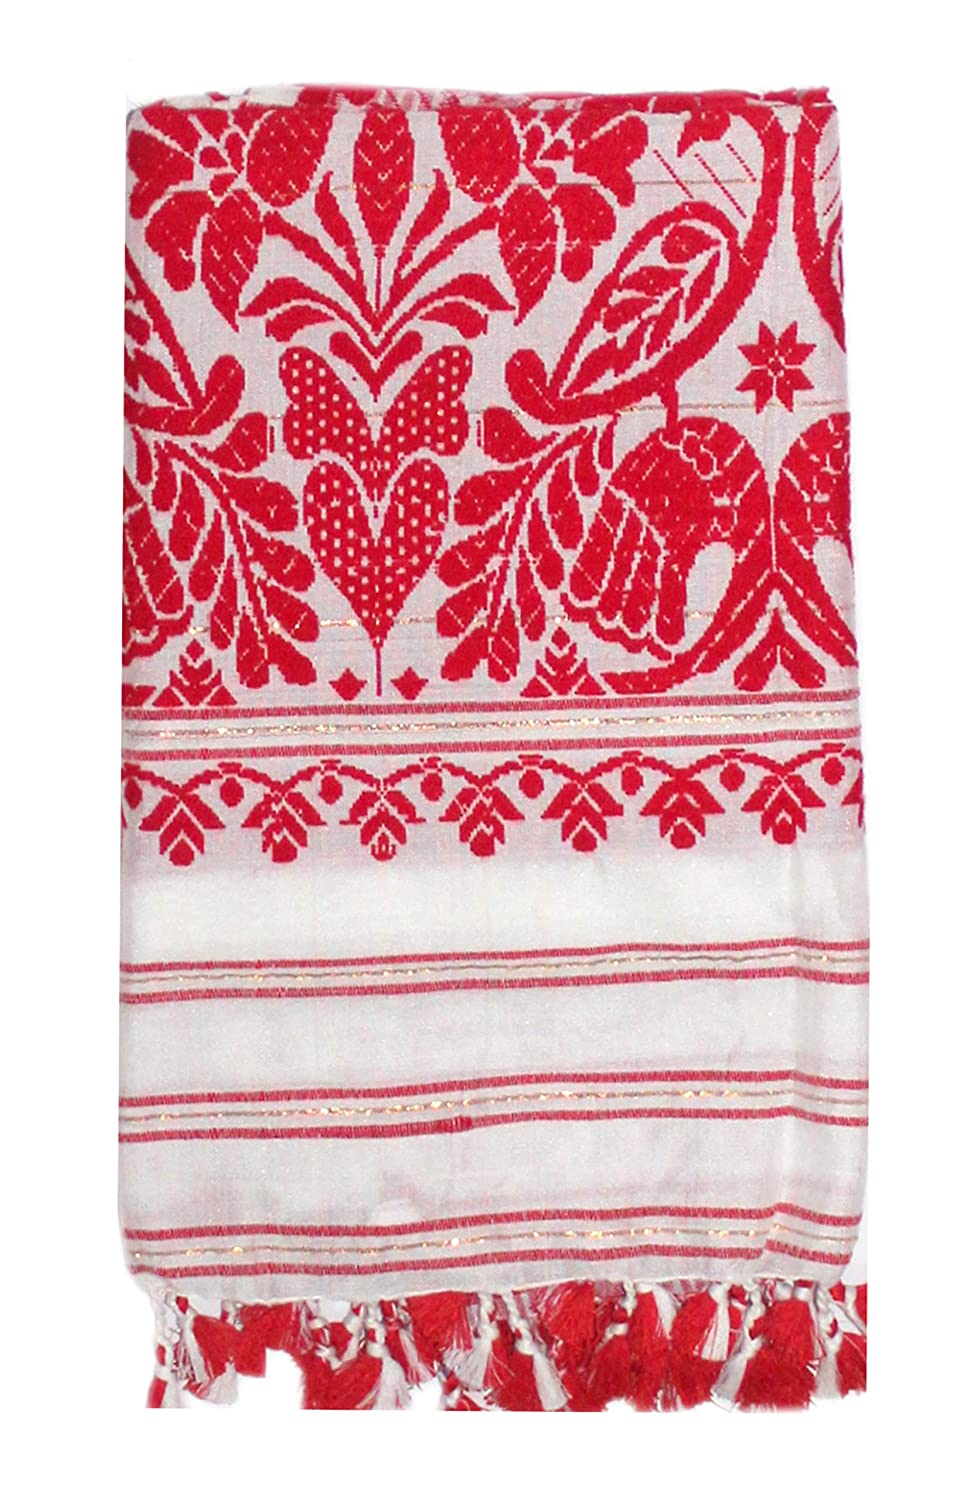 EPIC STORE RETAILER Assam Silk Cotton Heavy Work Side Bordered Soft-Pat Hand Made Gamosa , 67 x 25 Inches, White